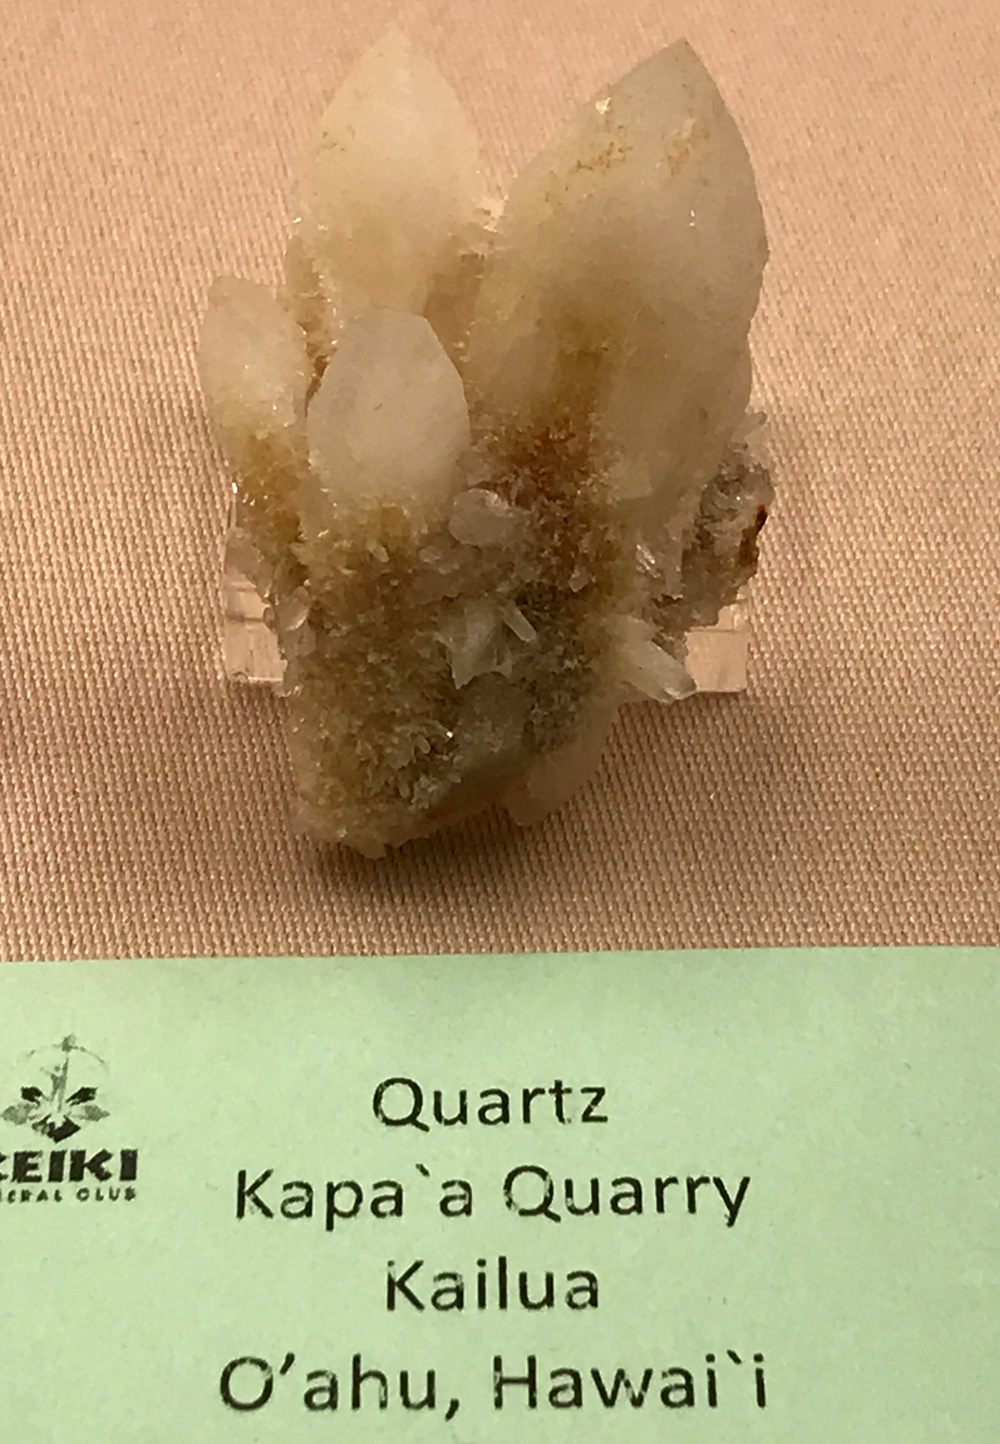 Quartz crystals from Hawaii